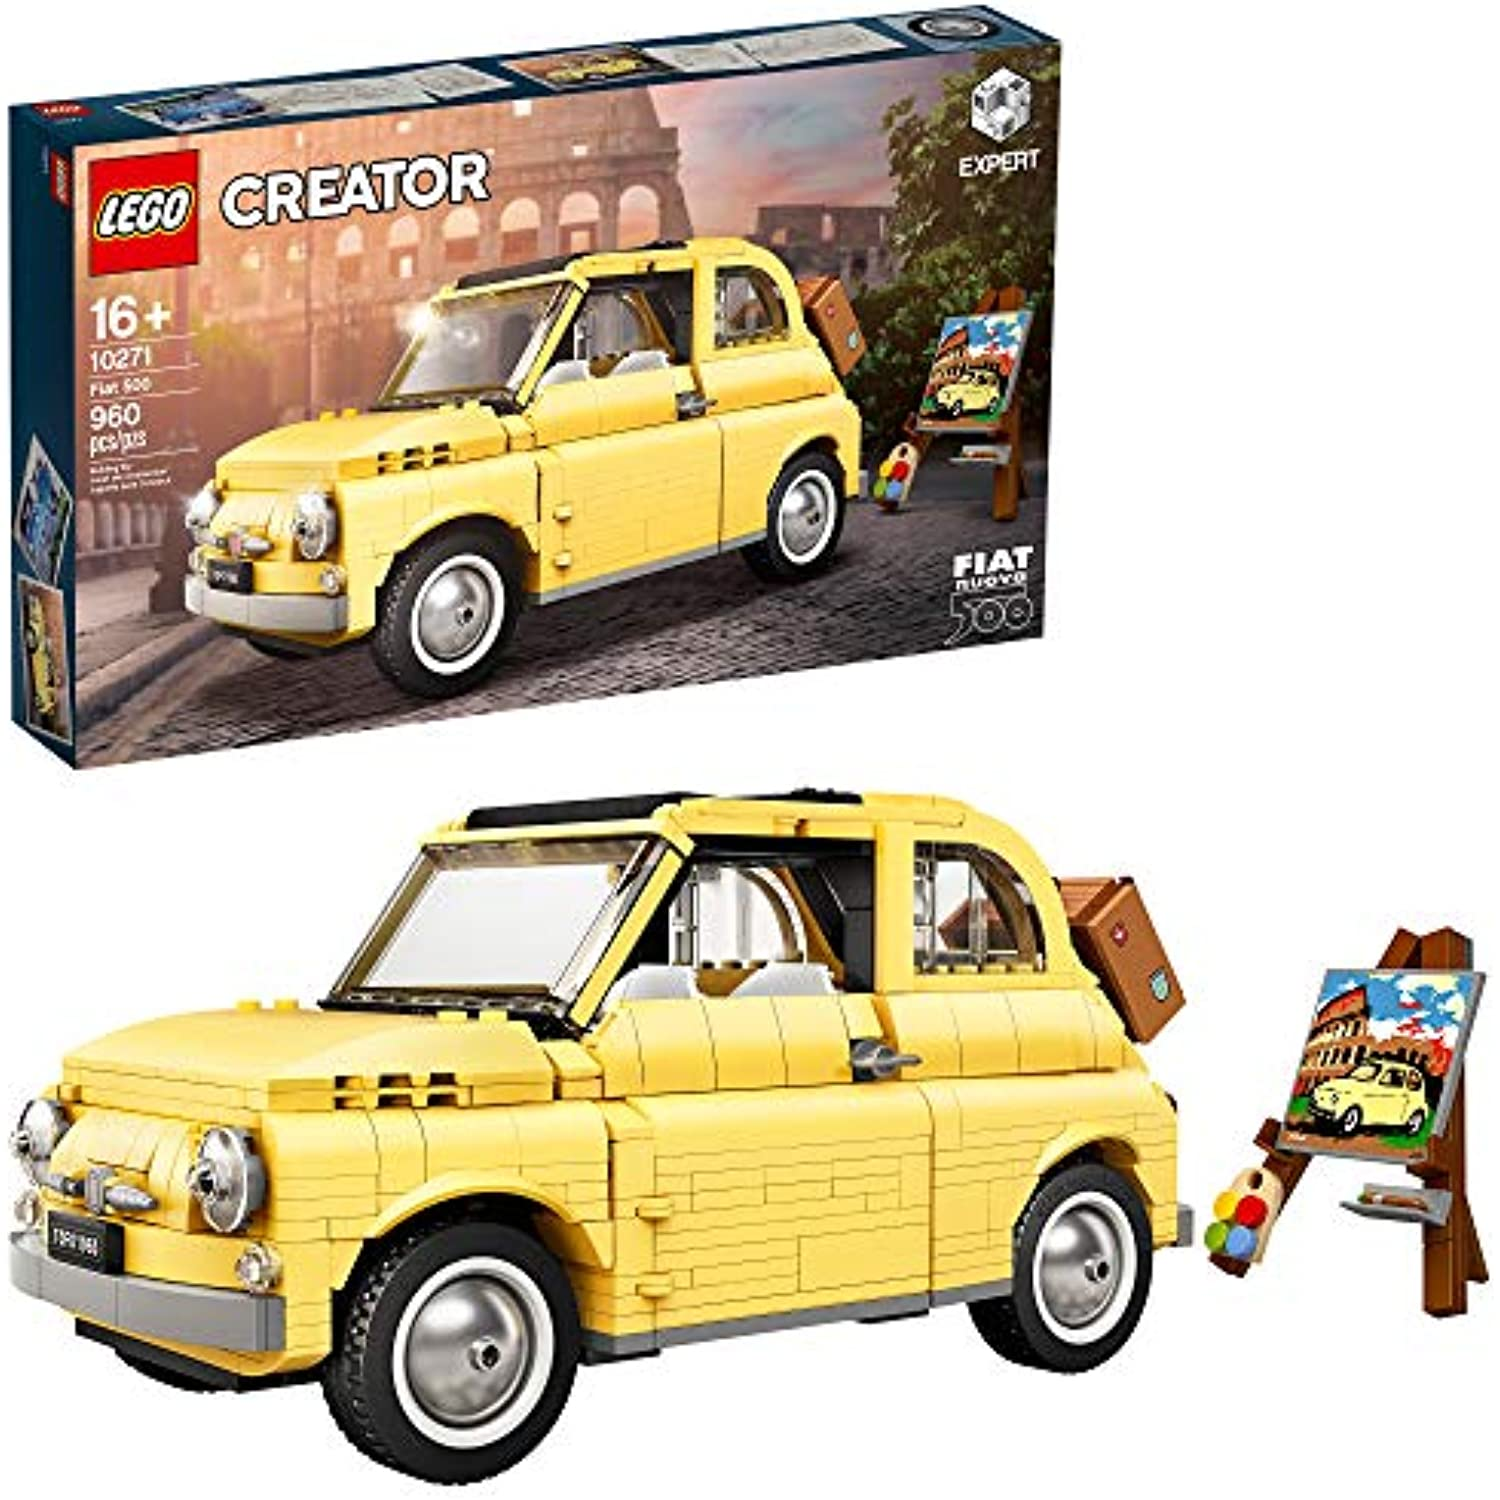 LEGO Creator Expert Fiat 500 10271 Toy Car Building Set for Adults and Fans of Model Kits Sets Idea (960 Pieces)